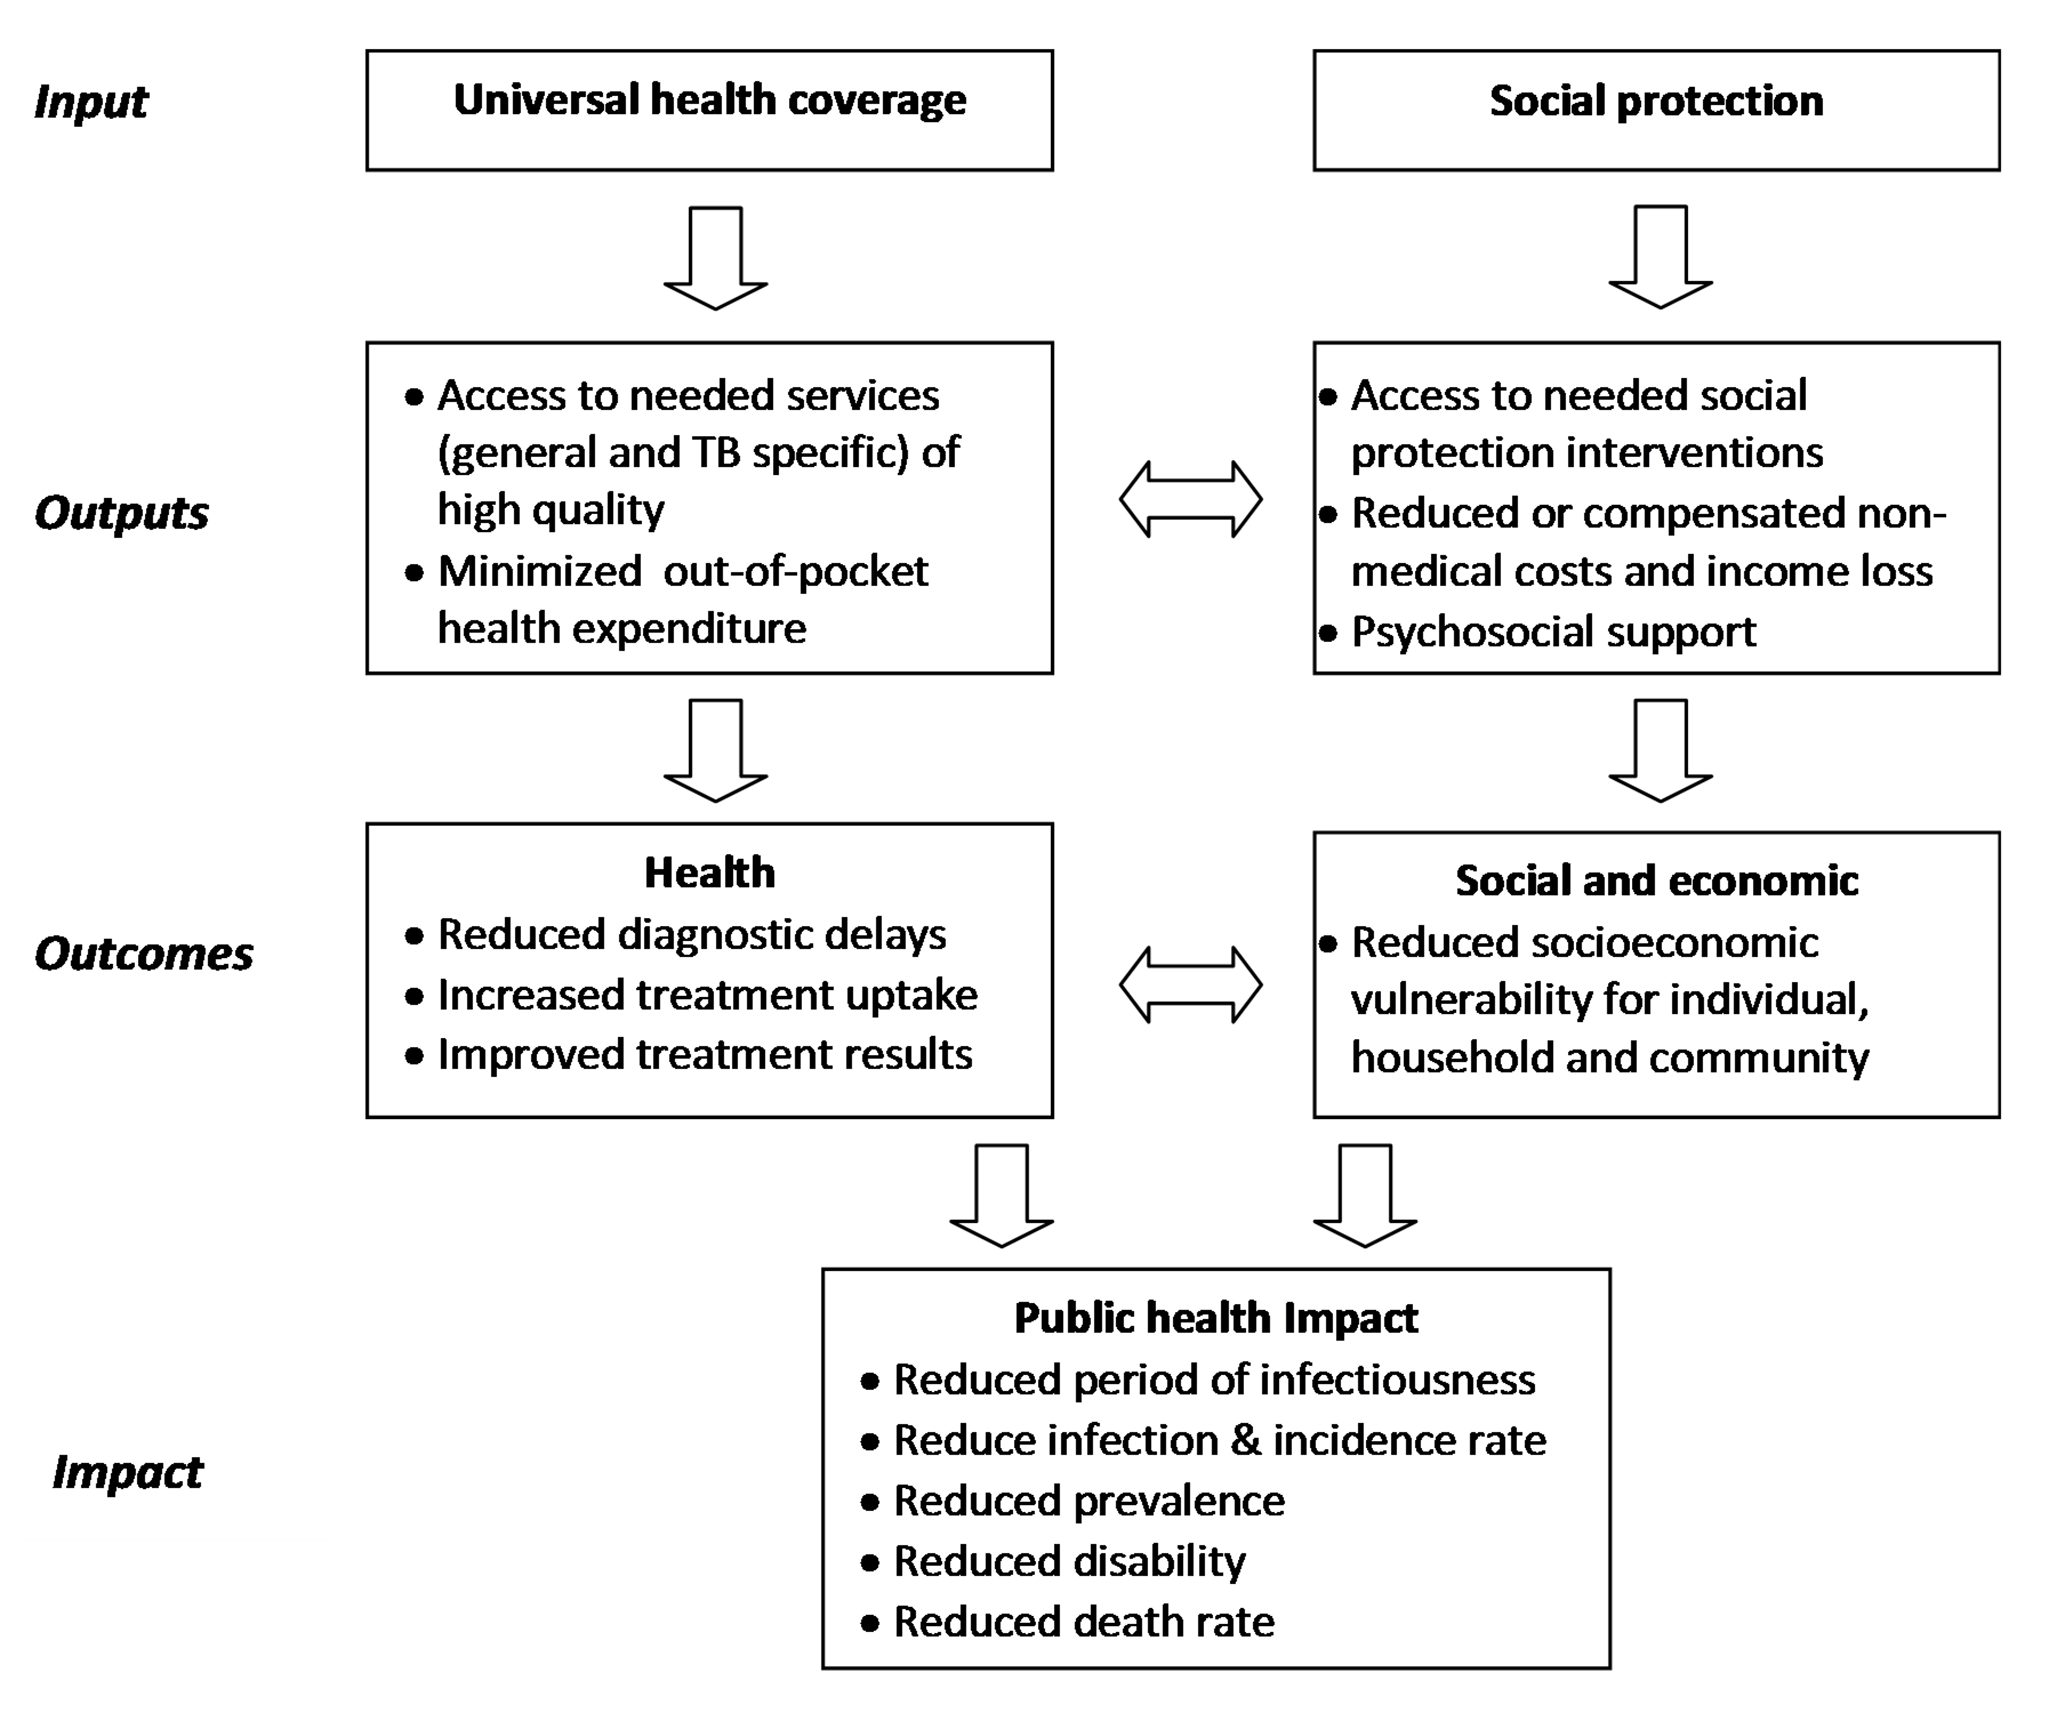 Framework to illustrate the interrelationship between universal health coverage, social protection, TB outcomes, and public health and social impact.